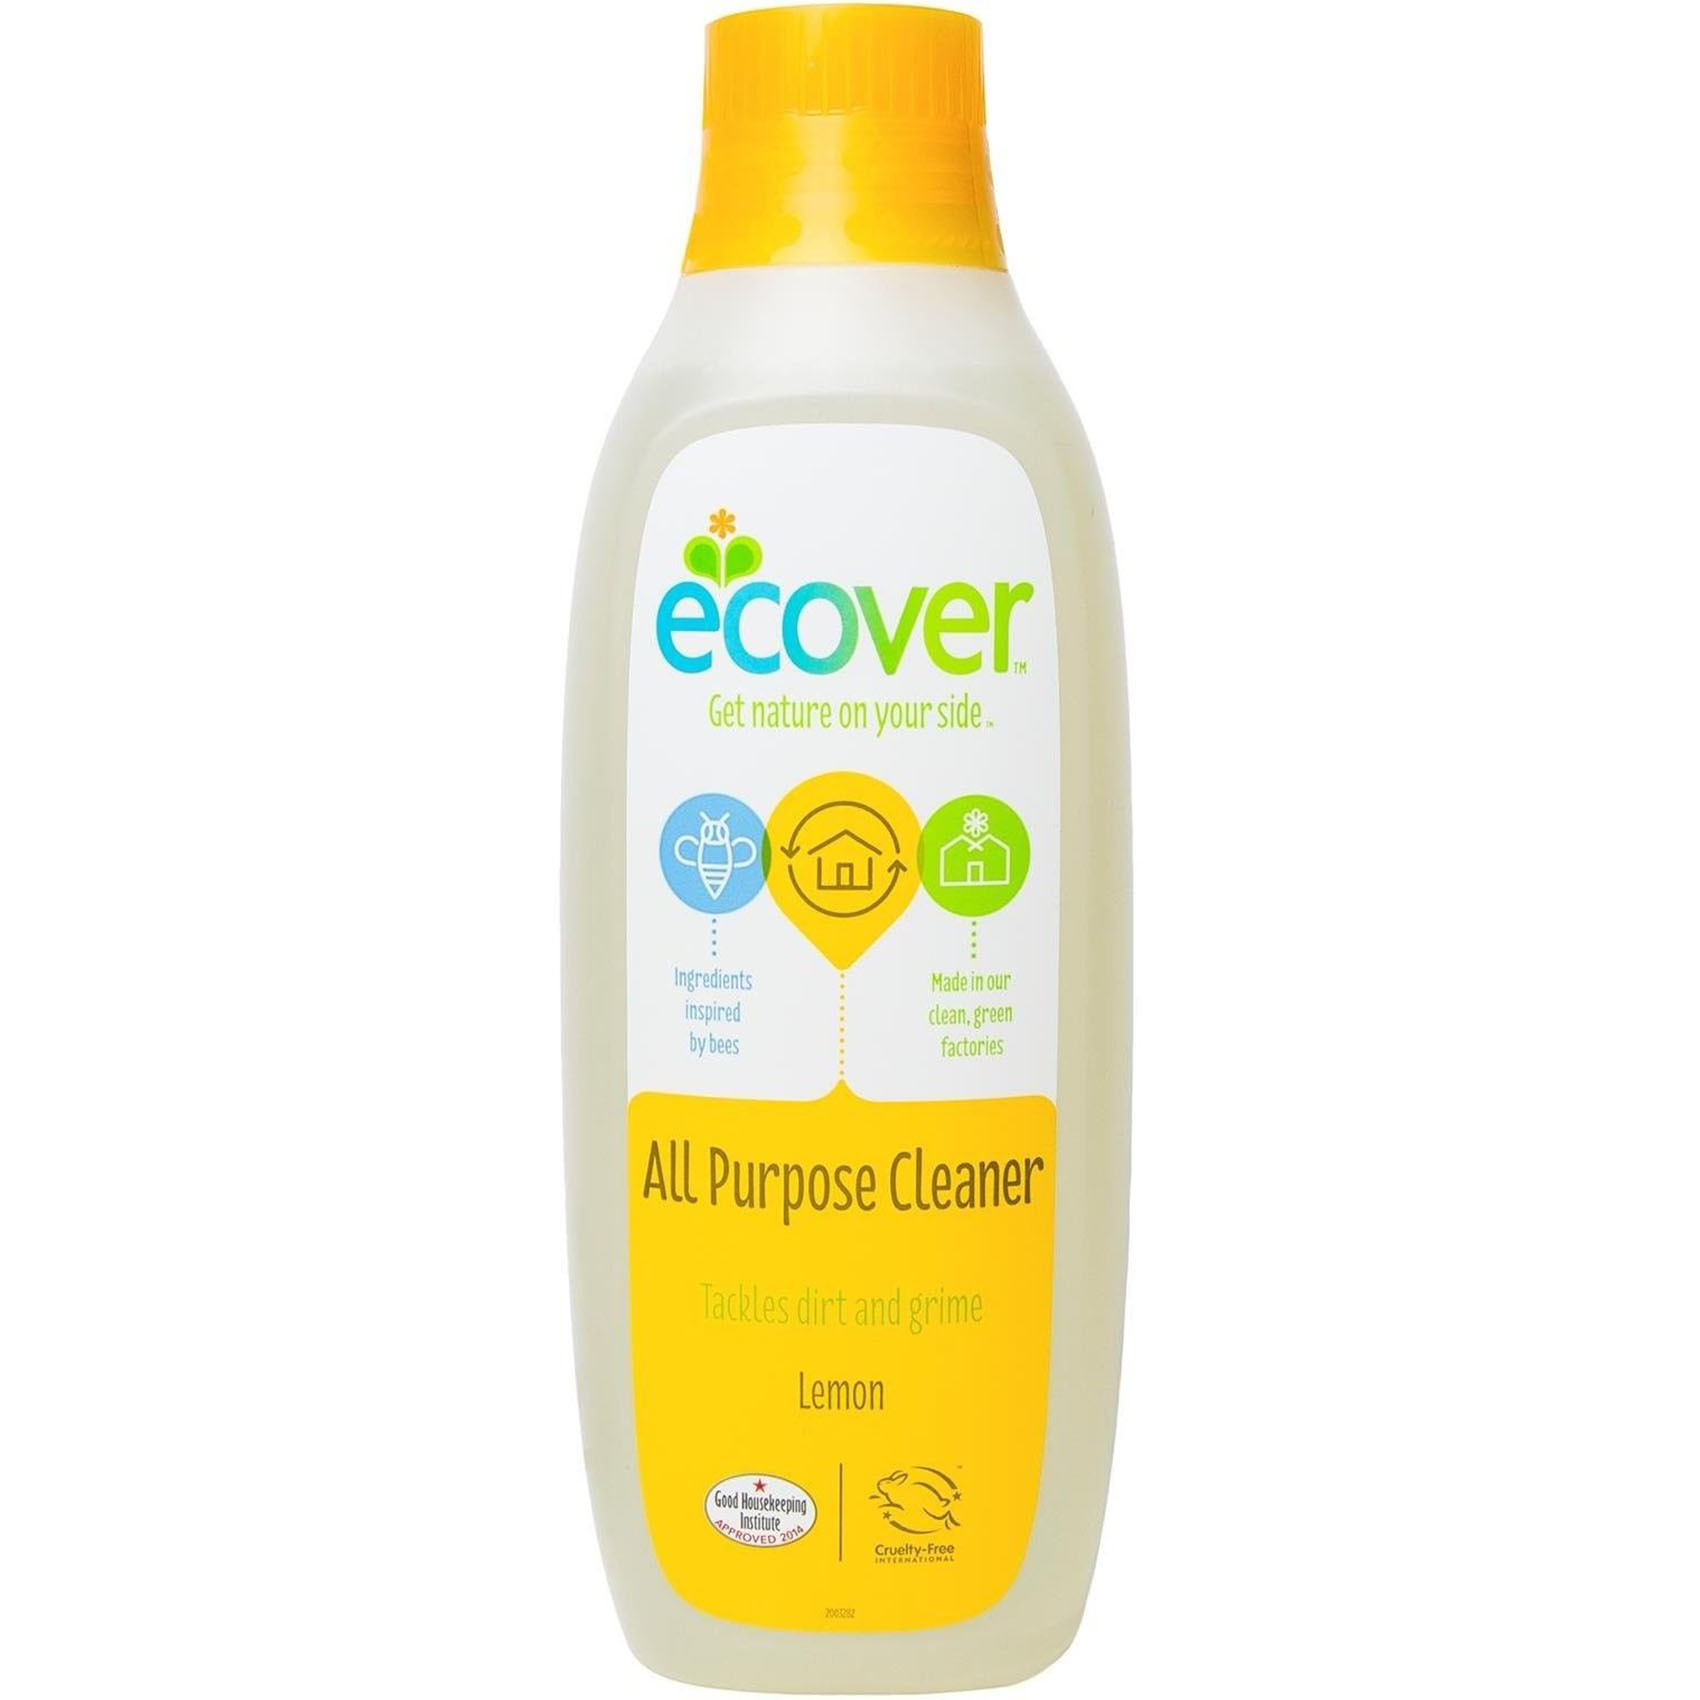 ECOVER CLEANER 1L